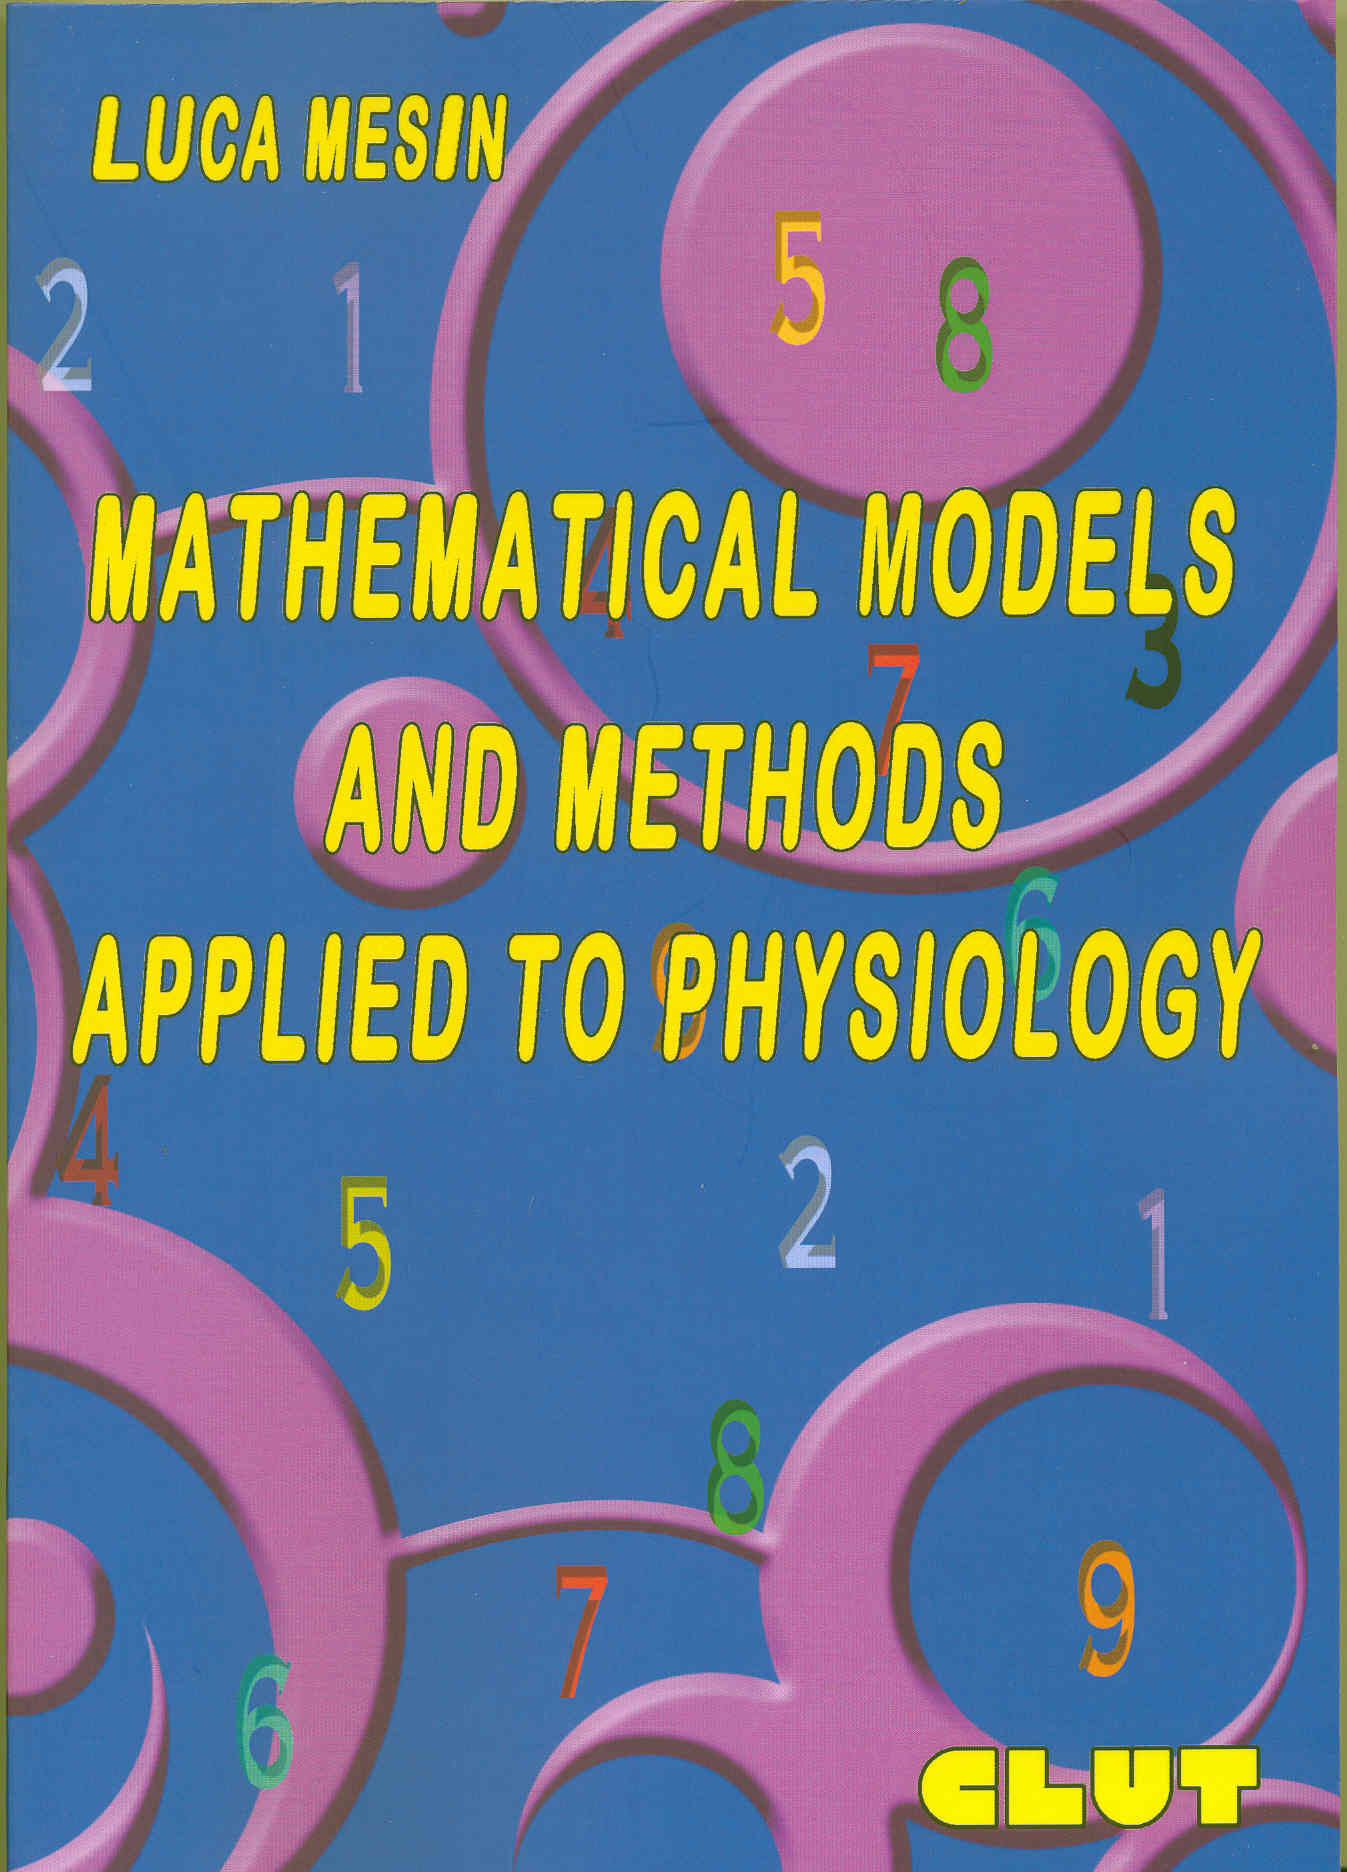 MATHEMATICAL MODELS AND METHODS APPLIED TO PHYSIOLOGY